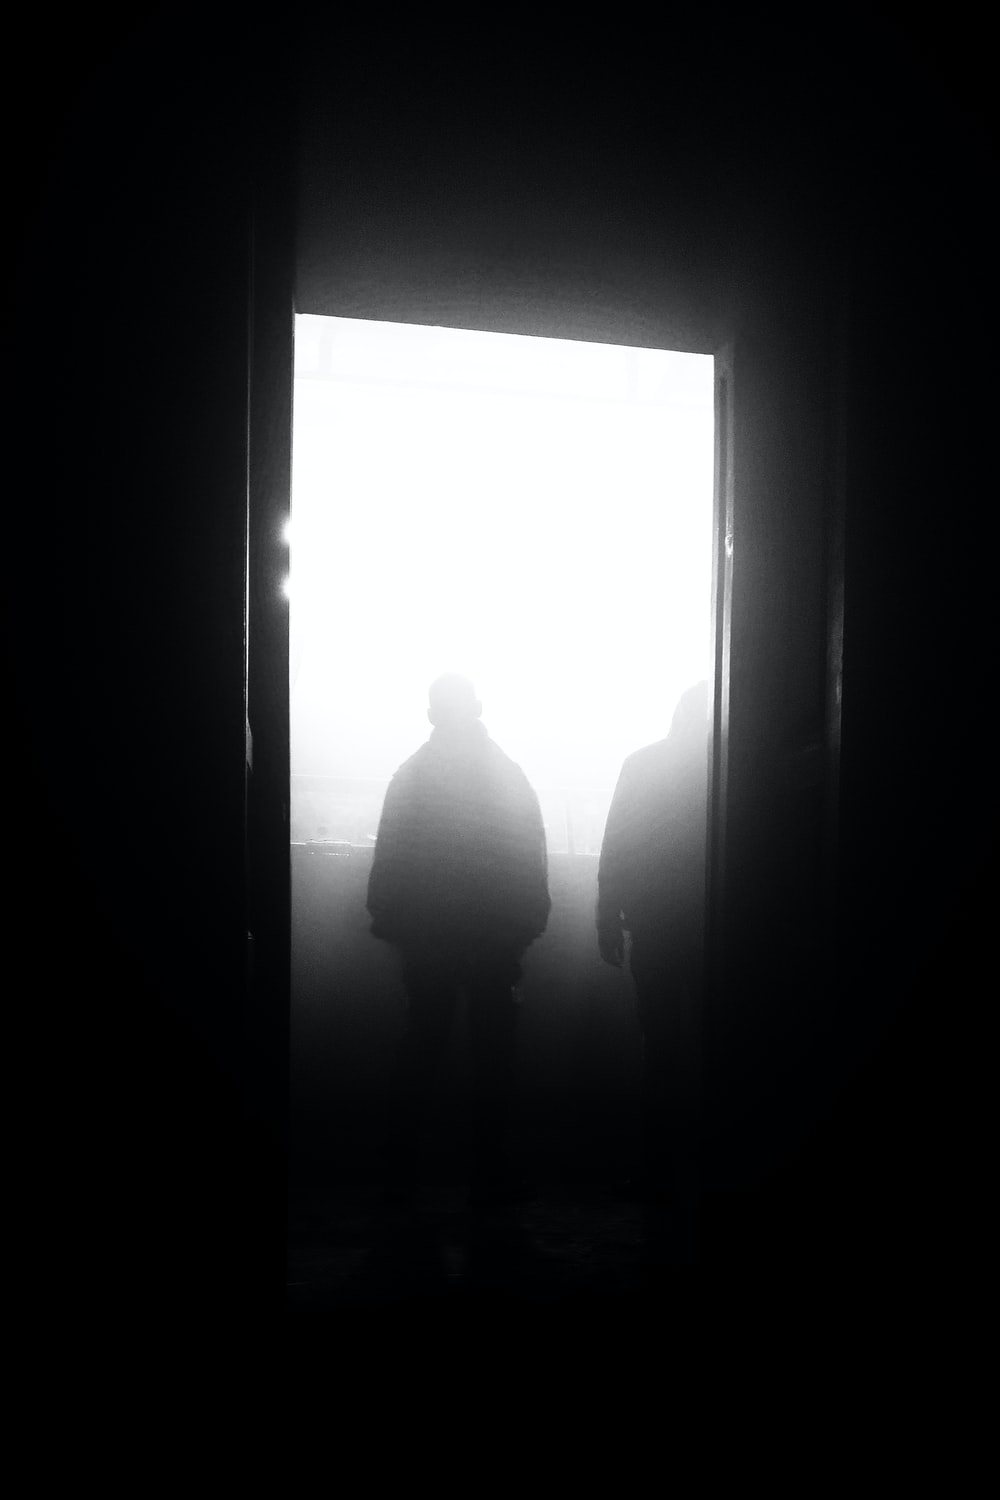 silhouette of man and woman standing in front of window